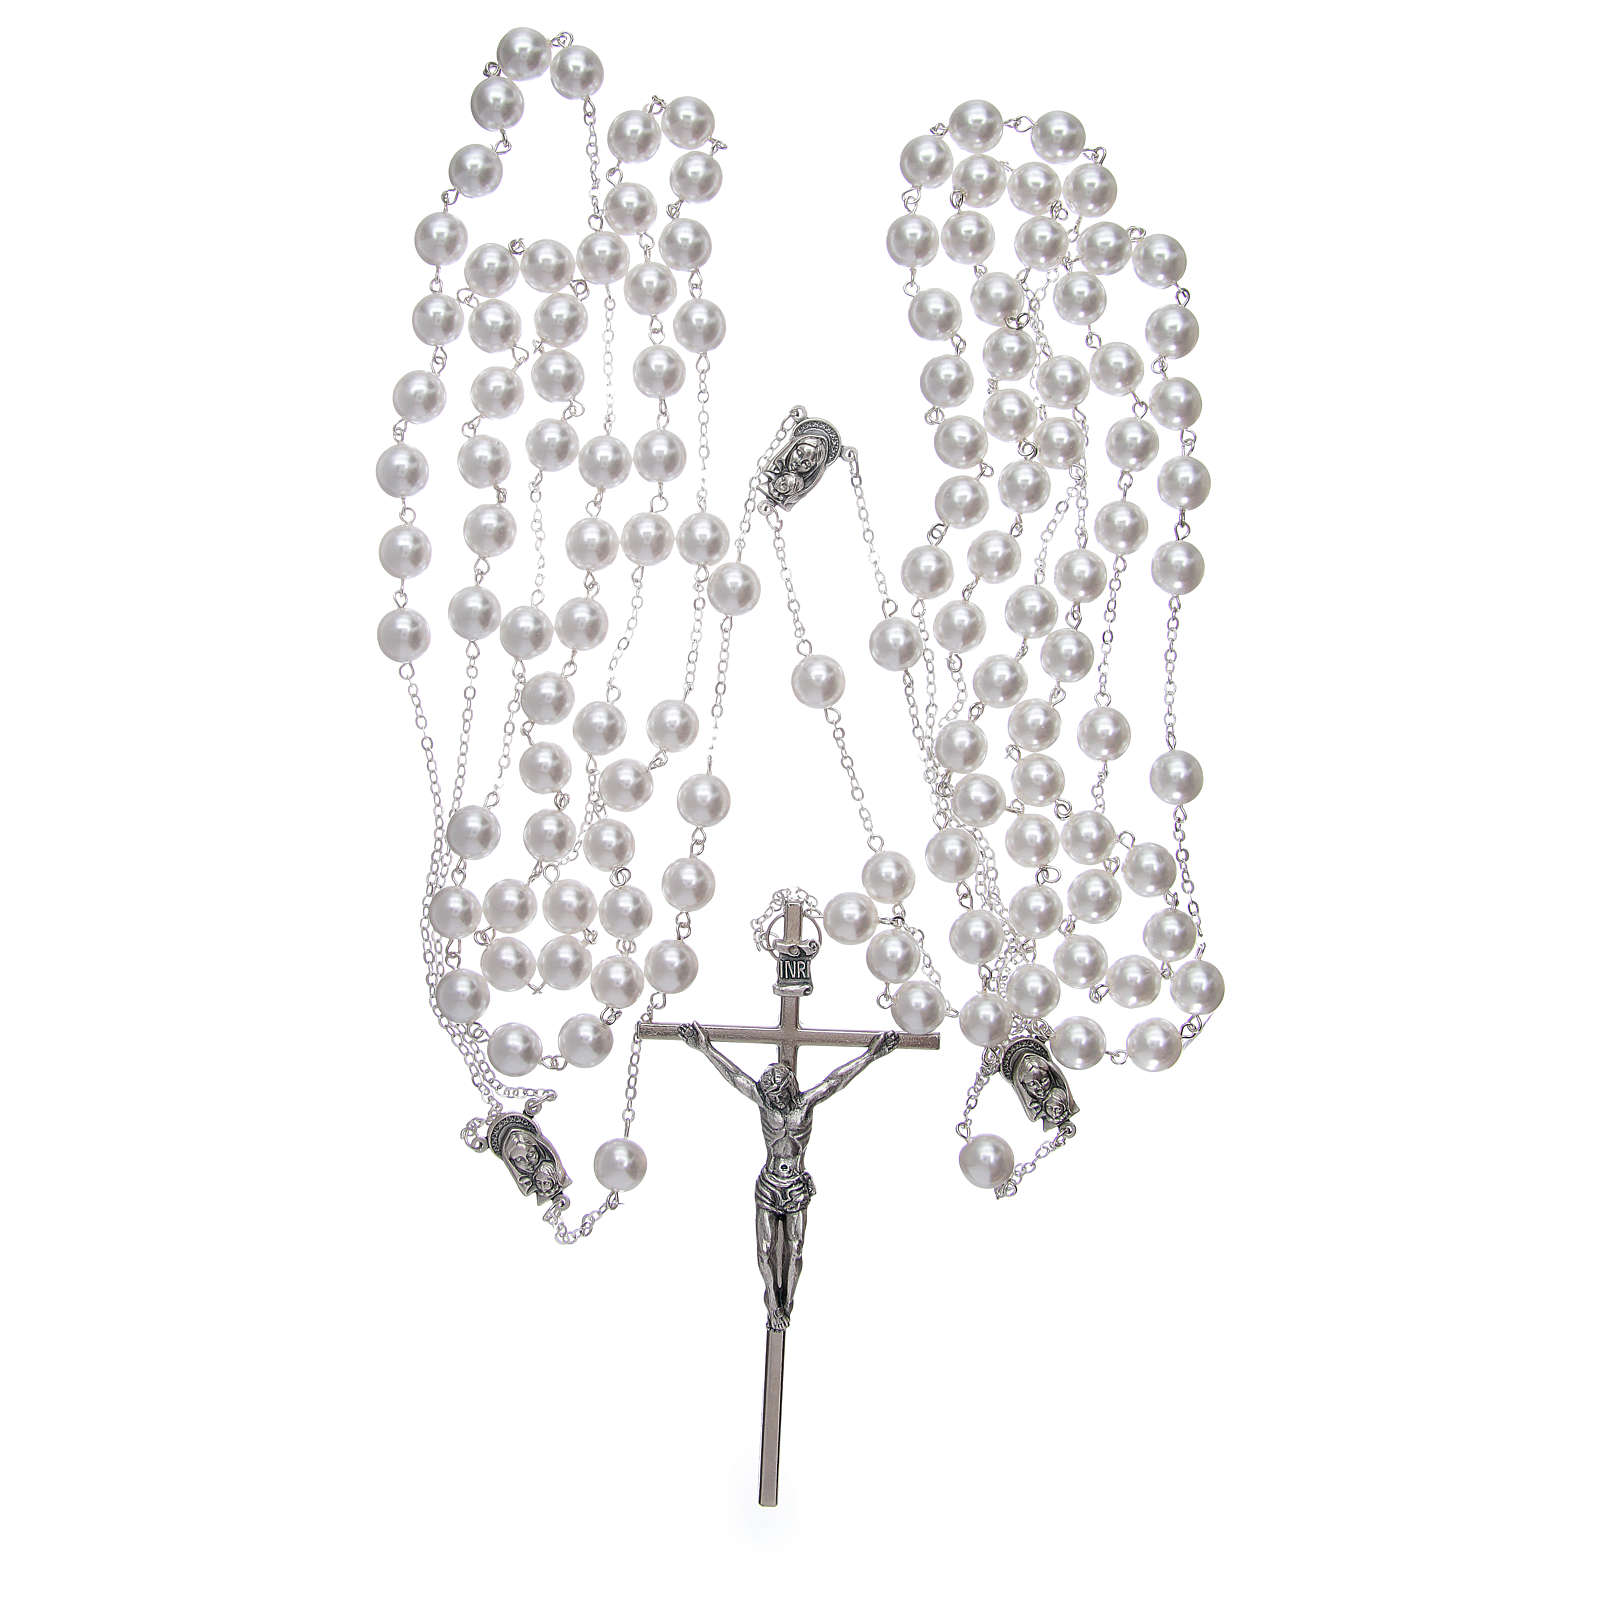 Double rosary for wedding with glass grains in mother of pearl imitation 4